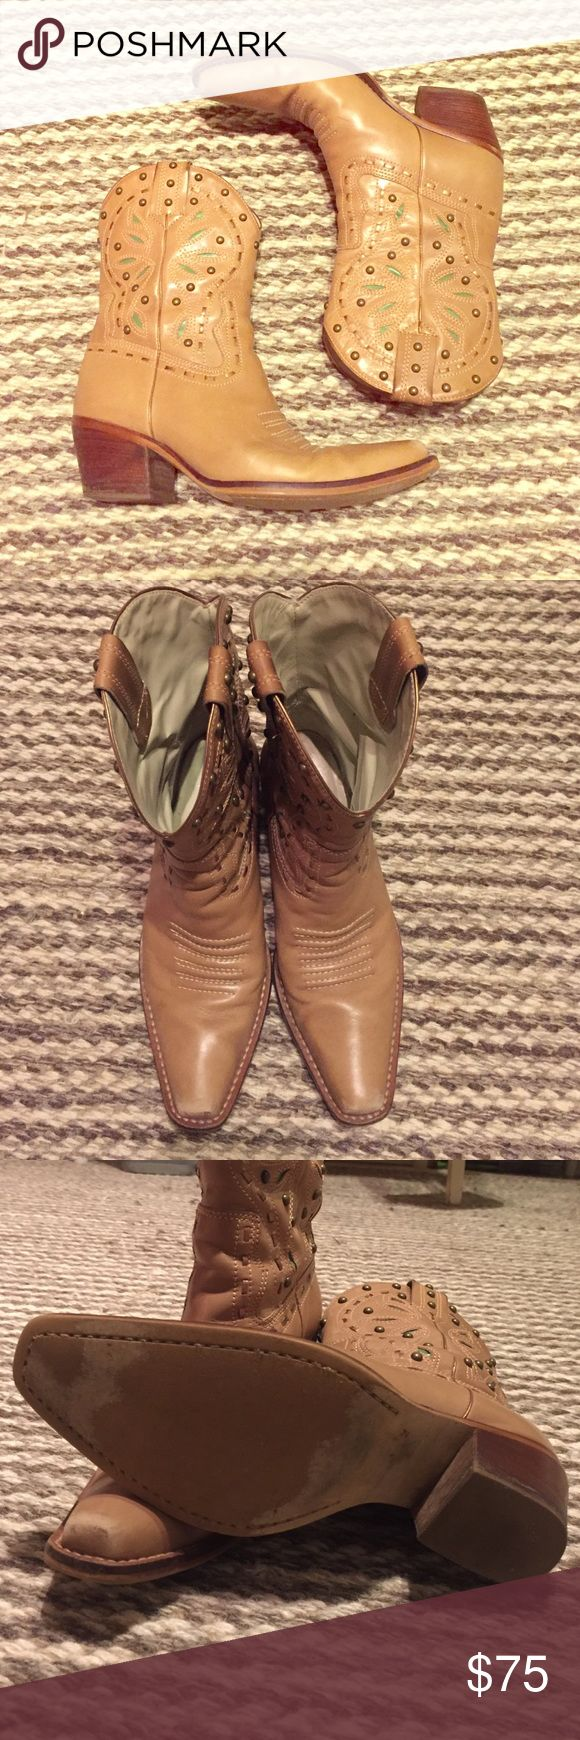 Leather cowgirl boots Tan leather cow girl boots with real design and gold/bronze studs!! So beautiful, worn in but in good condition! mercer & madison Shoes Heeled Boots